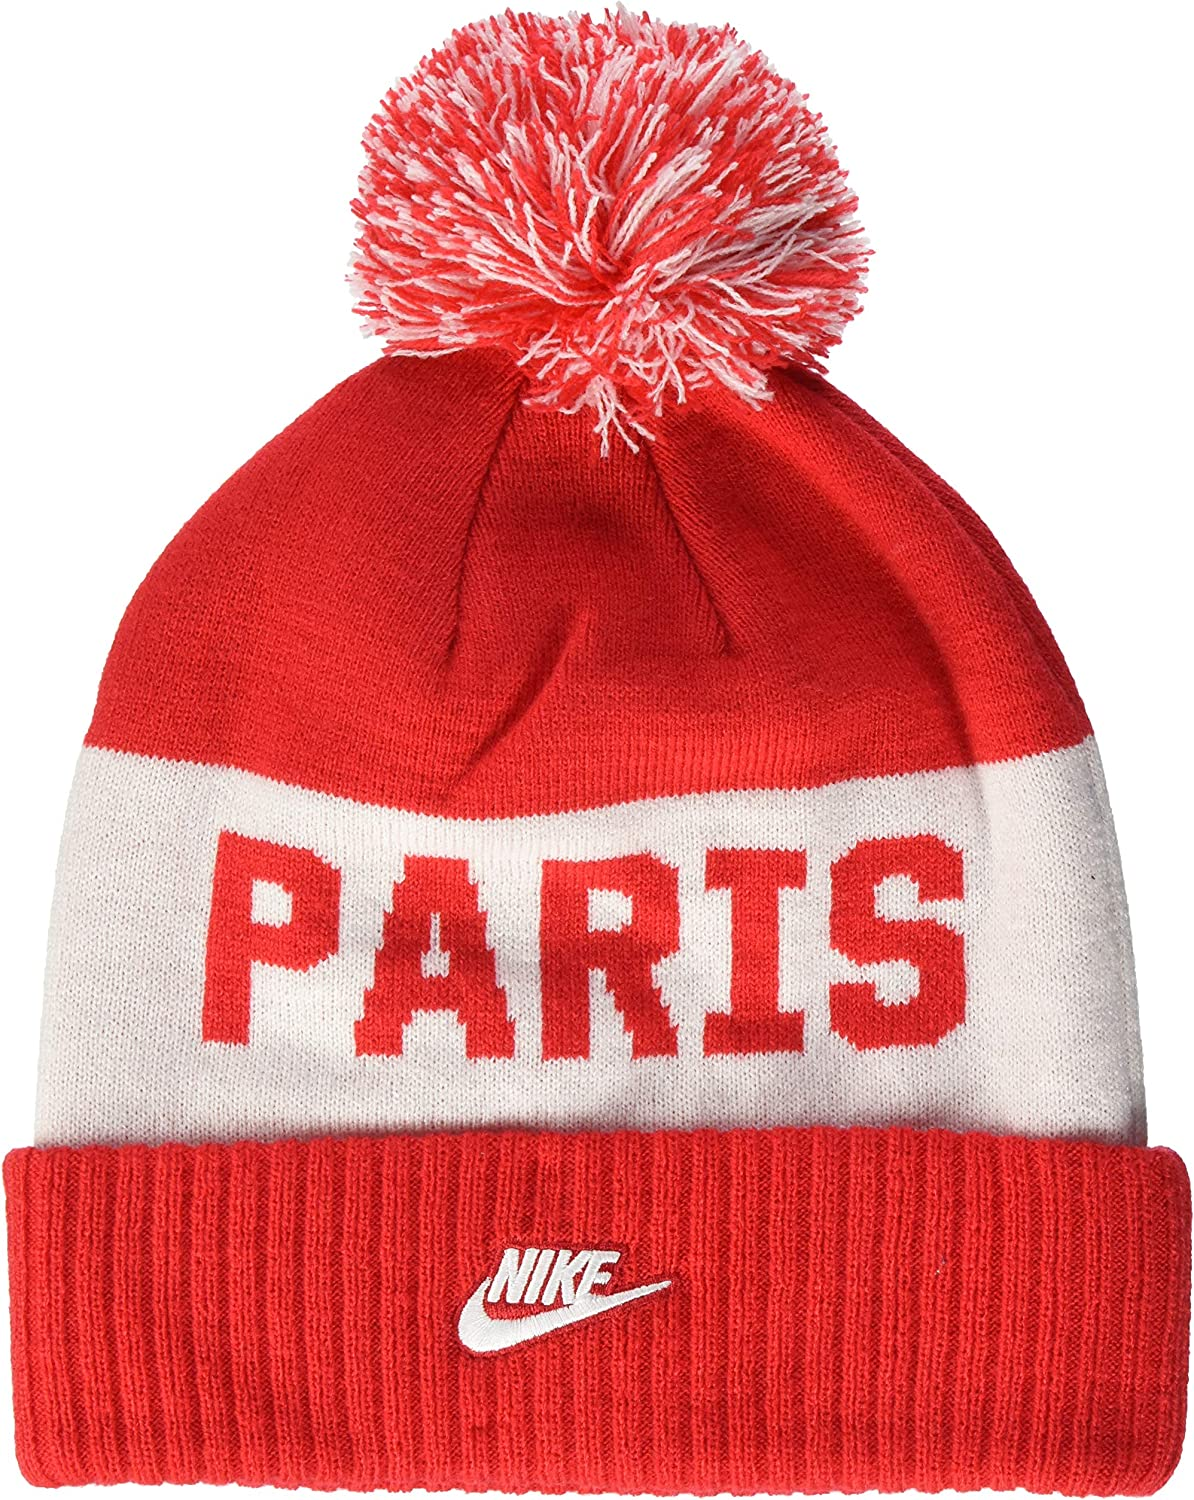 Amazon Com Nike Paris Saint Germain Beanie Universityred White Osfm Clothing